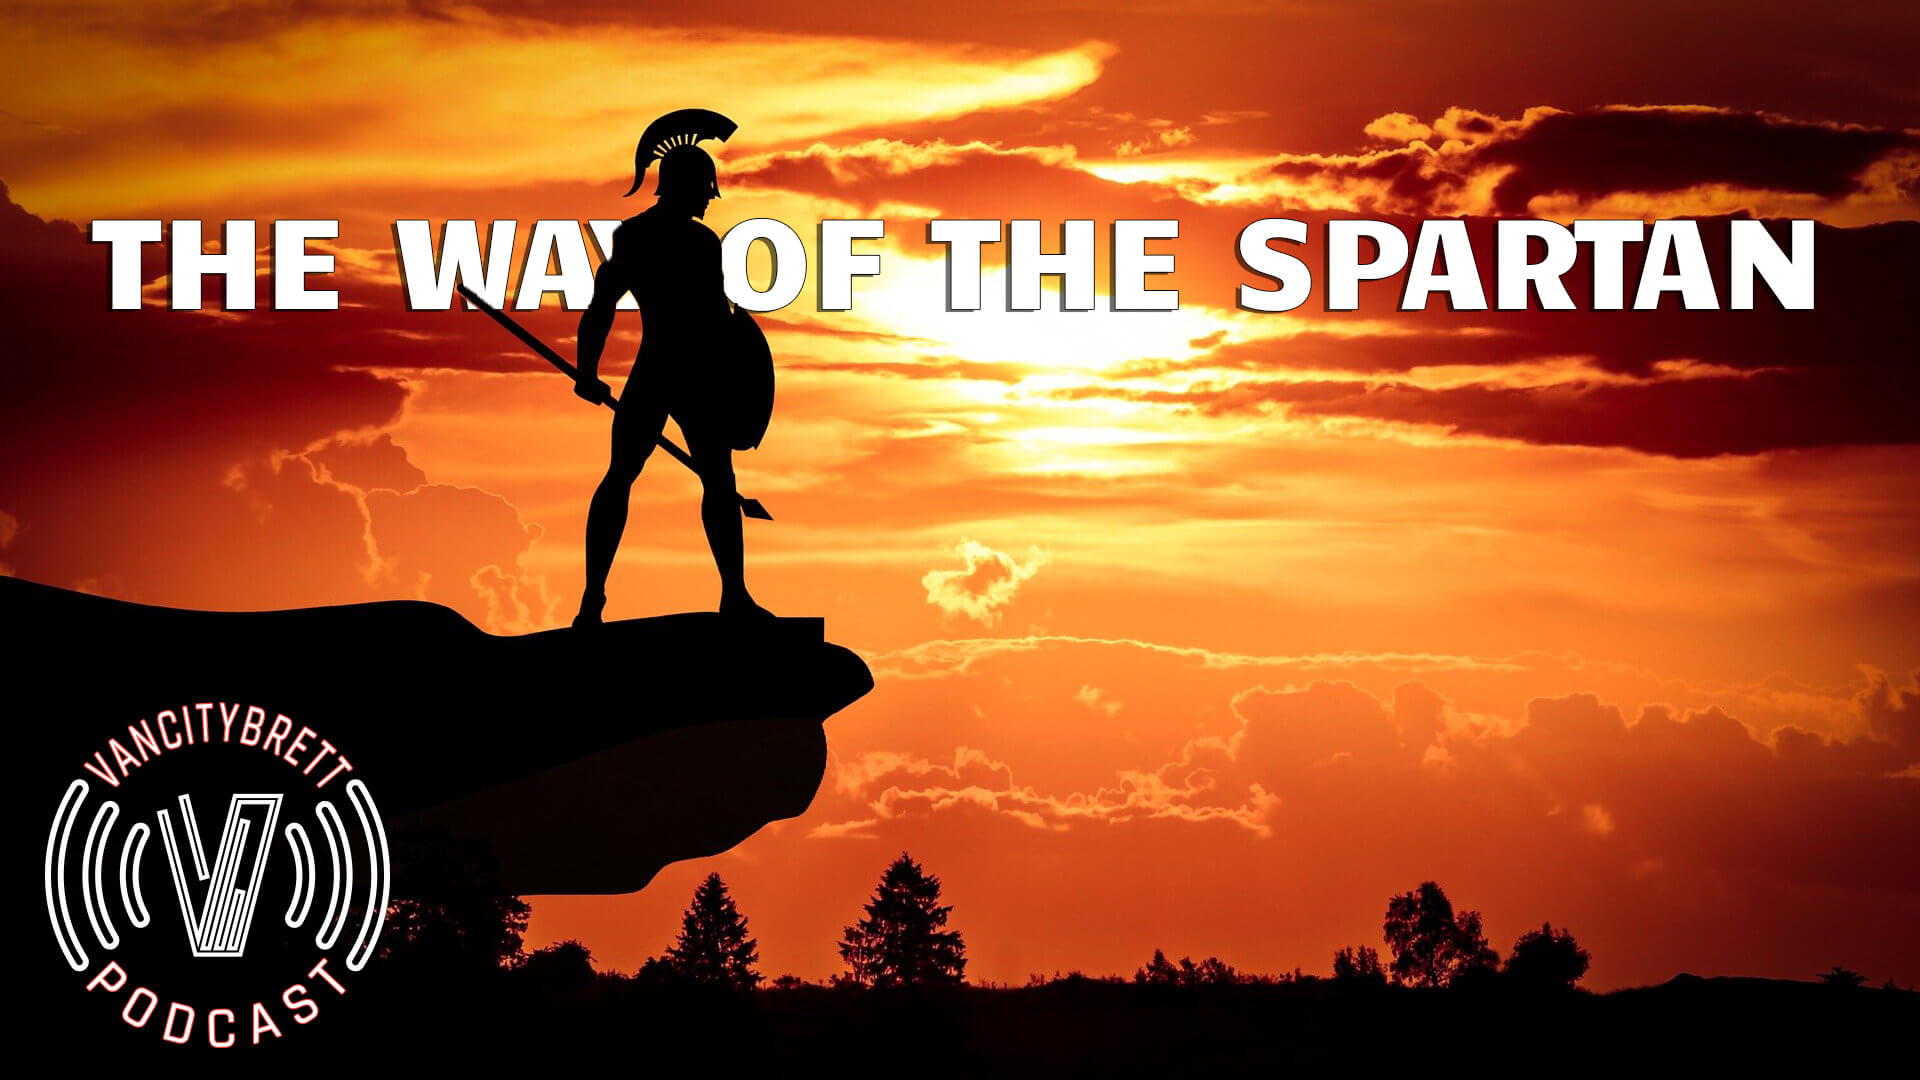 The Way Of The Spartan